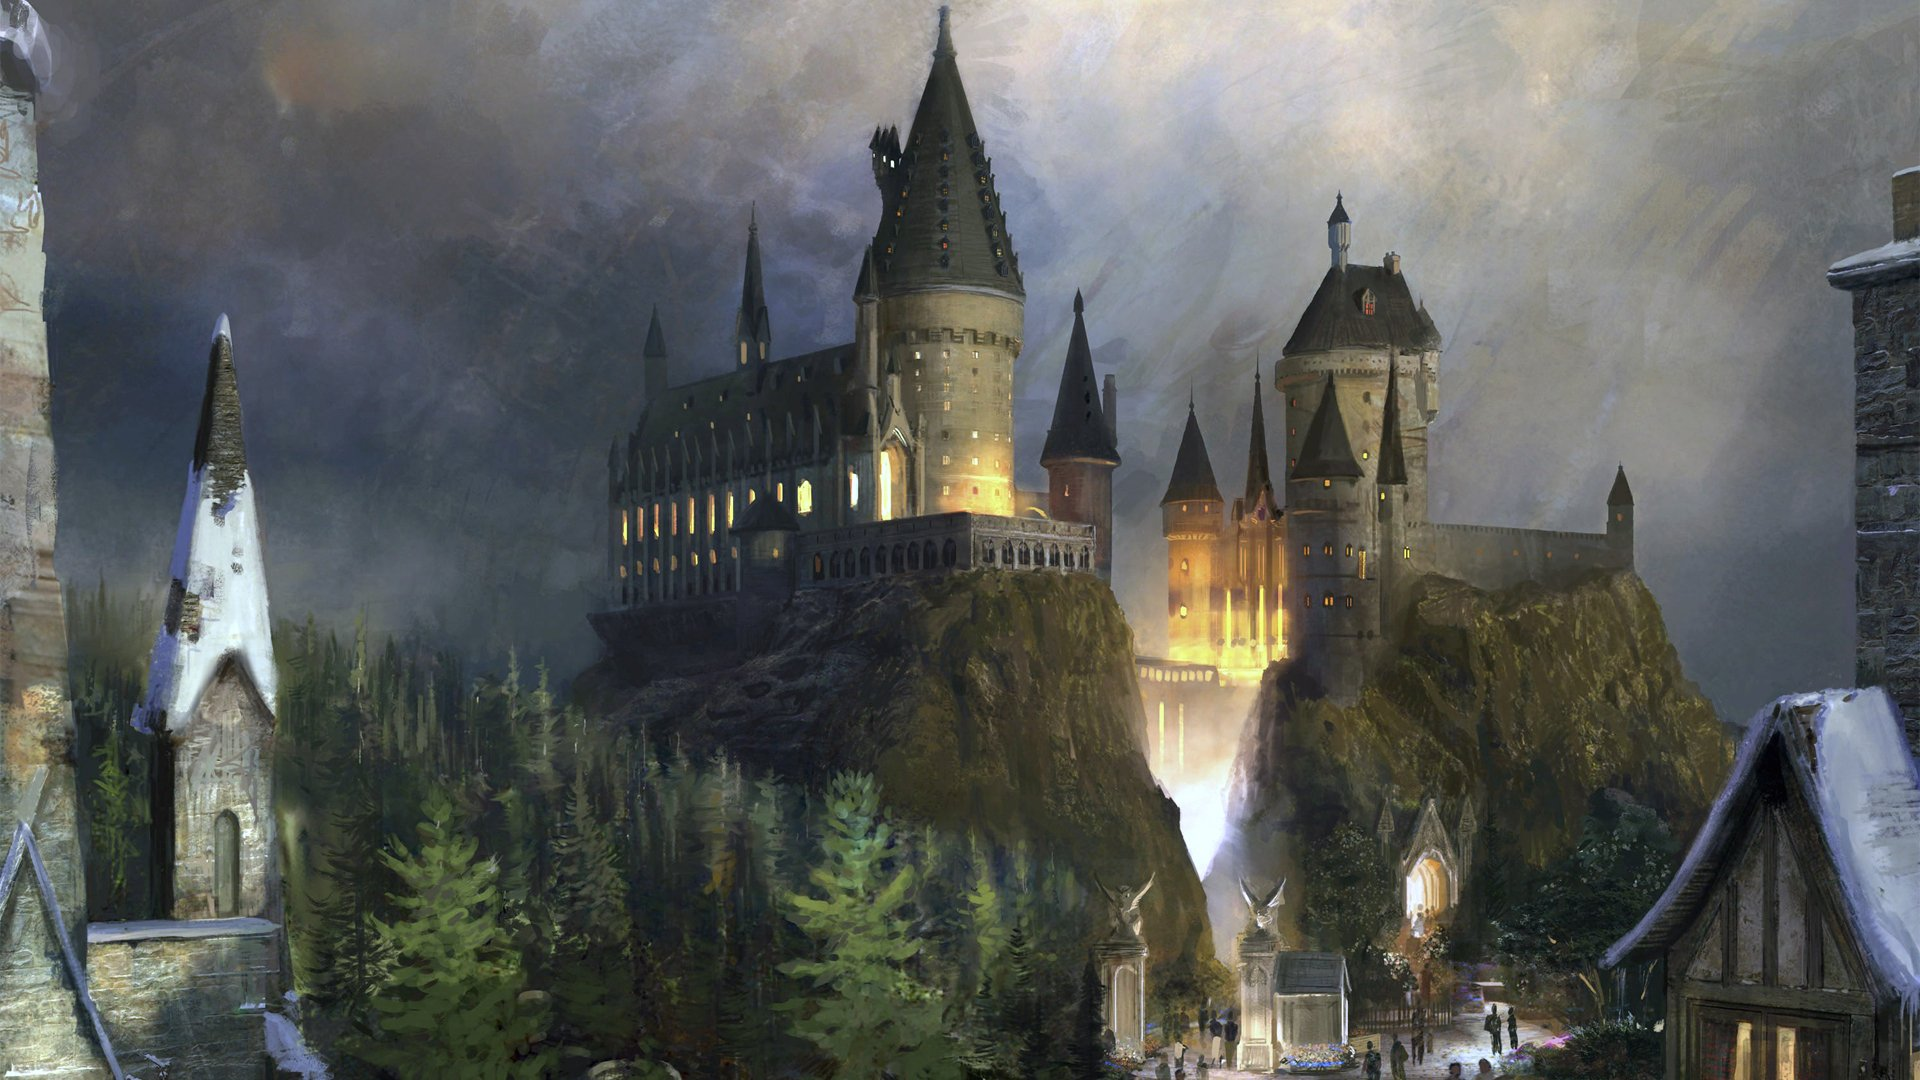 Fantasy - Castle  Hogwarts Castle! Wallpaper